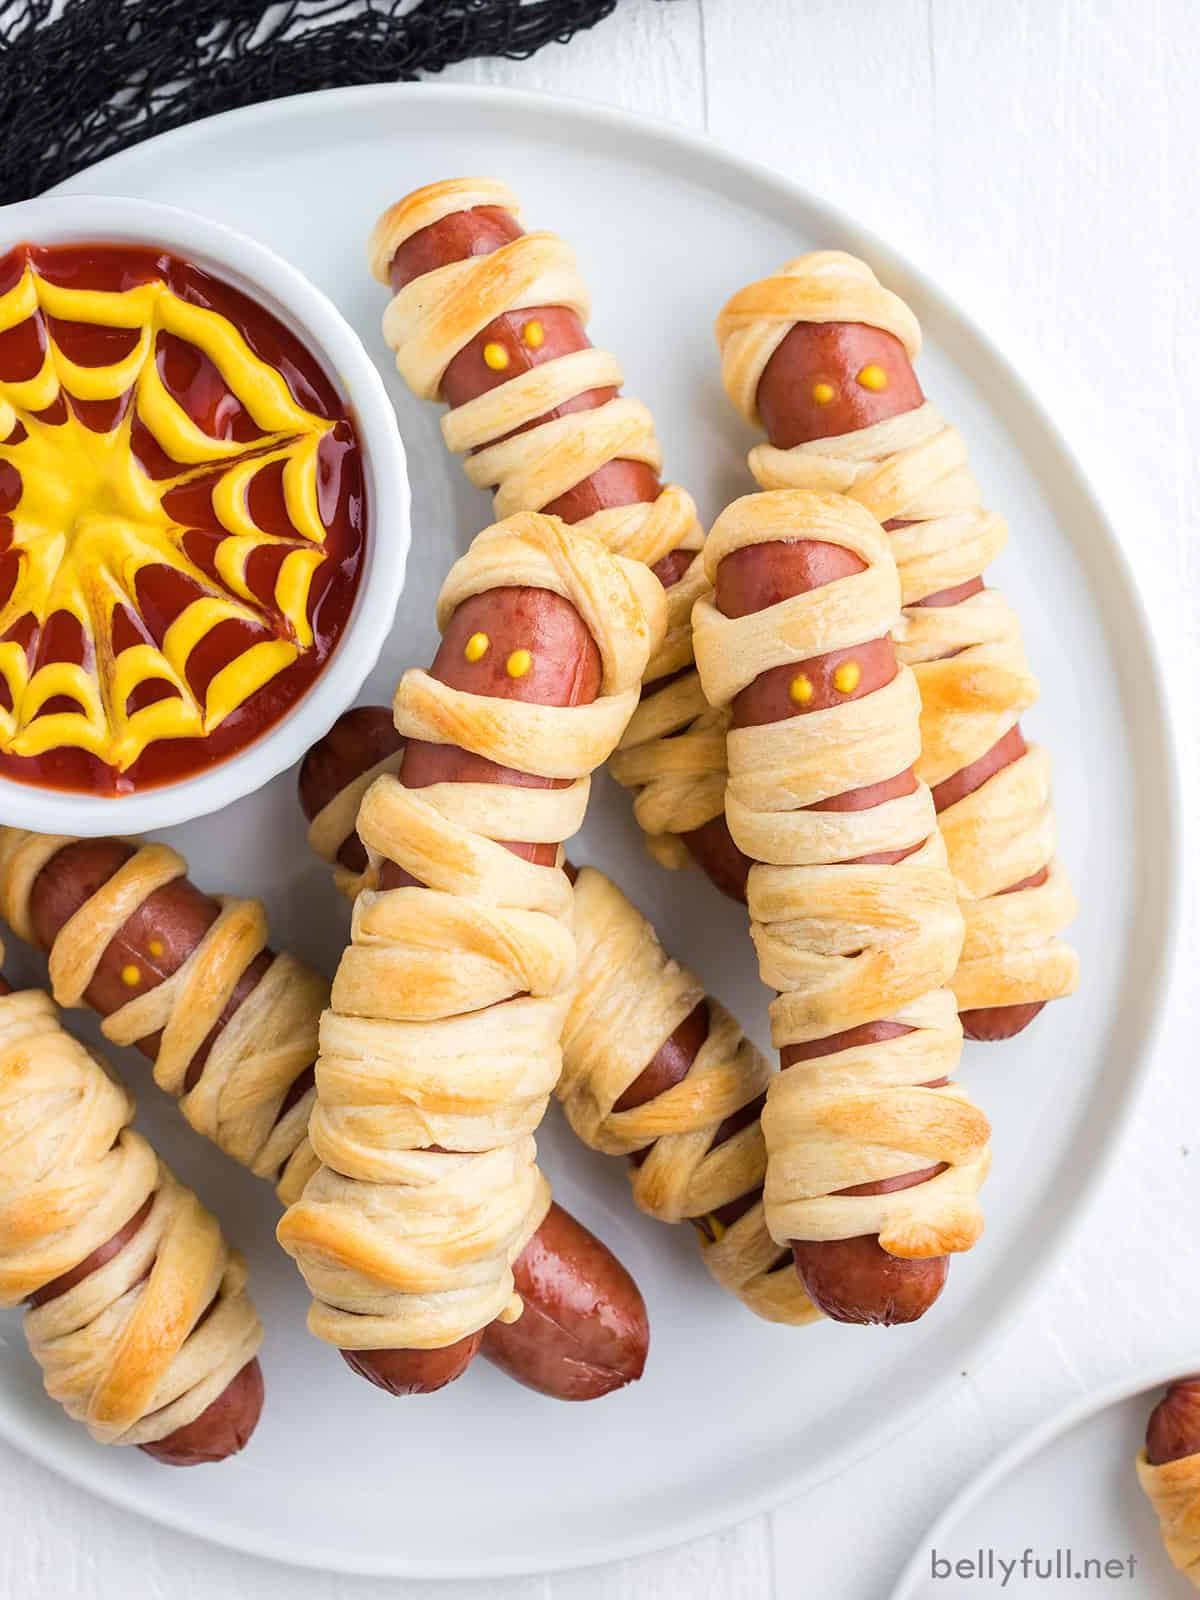 Mummy dogs on a white plate with spiderweb sauce